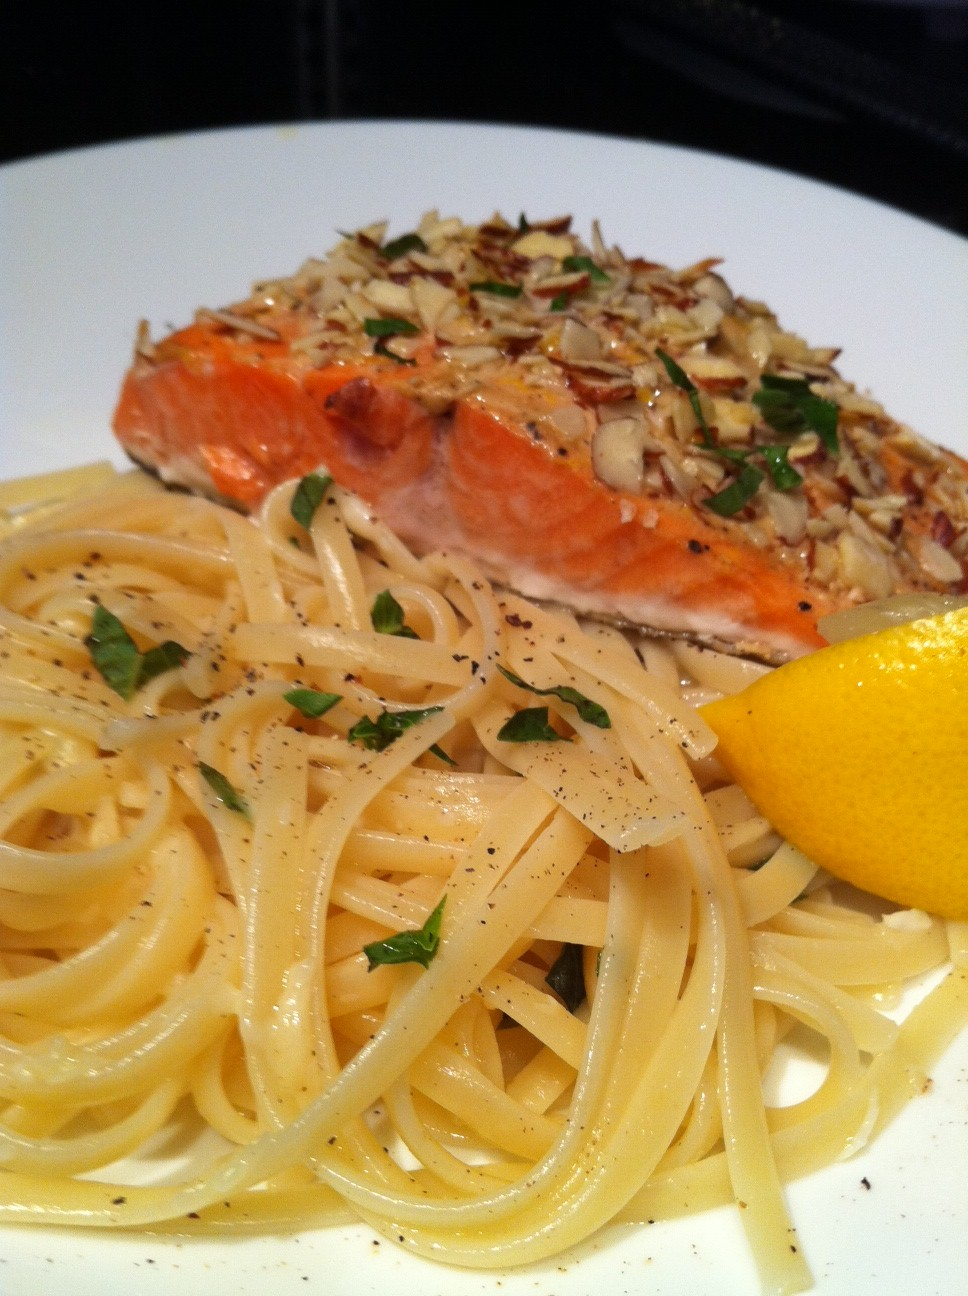 Almond+Crusted+Salmon3.jpg